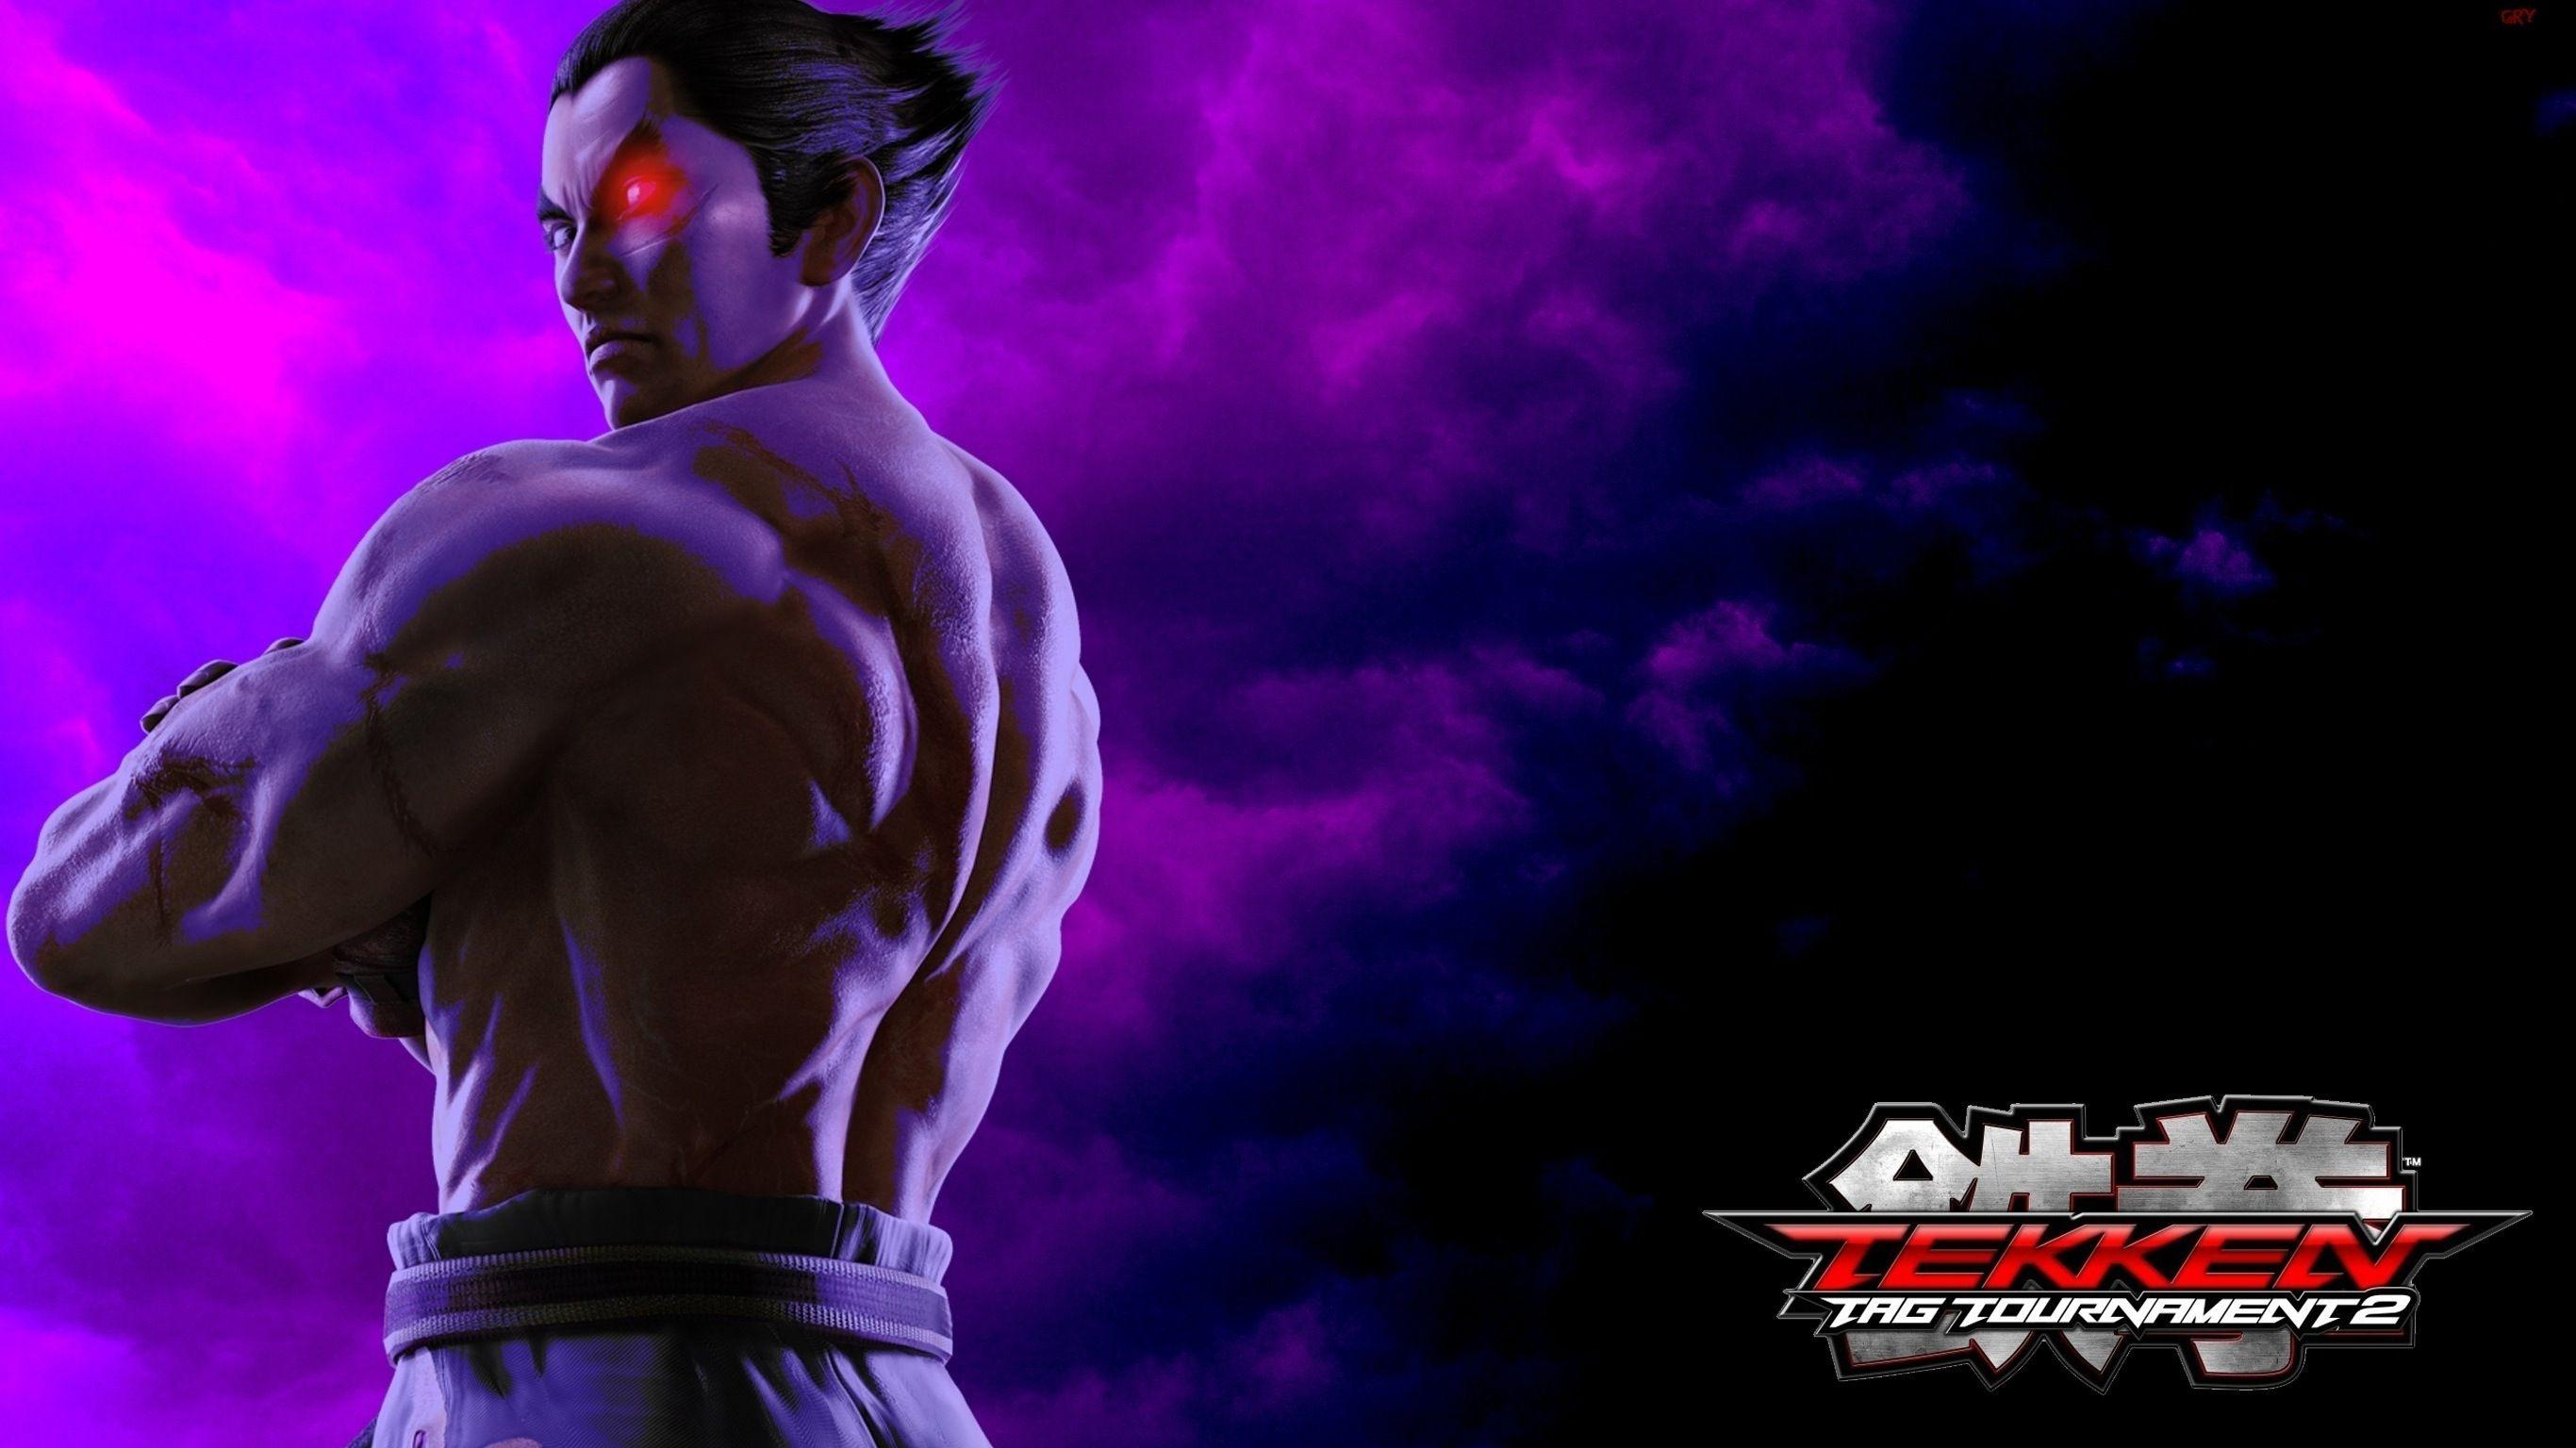 Customized/Wallpapers | Kazuya Mishima